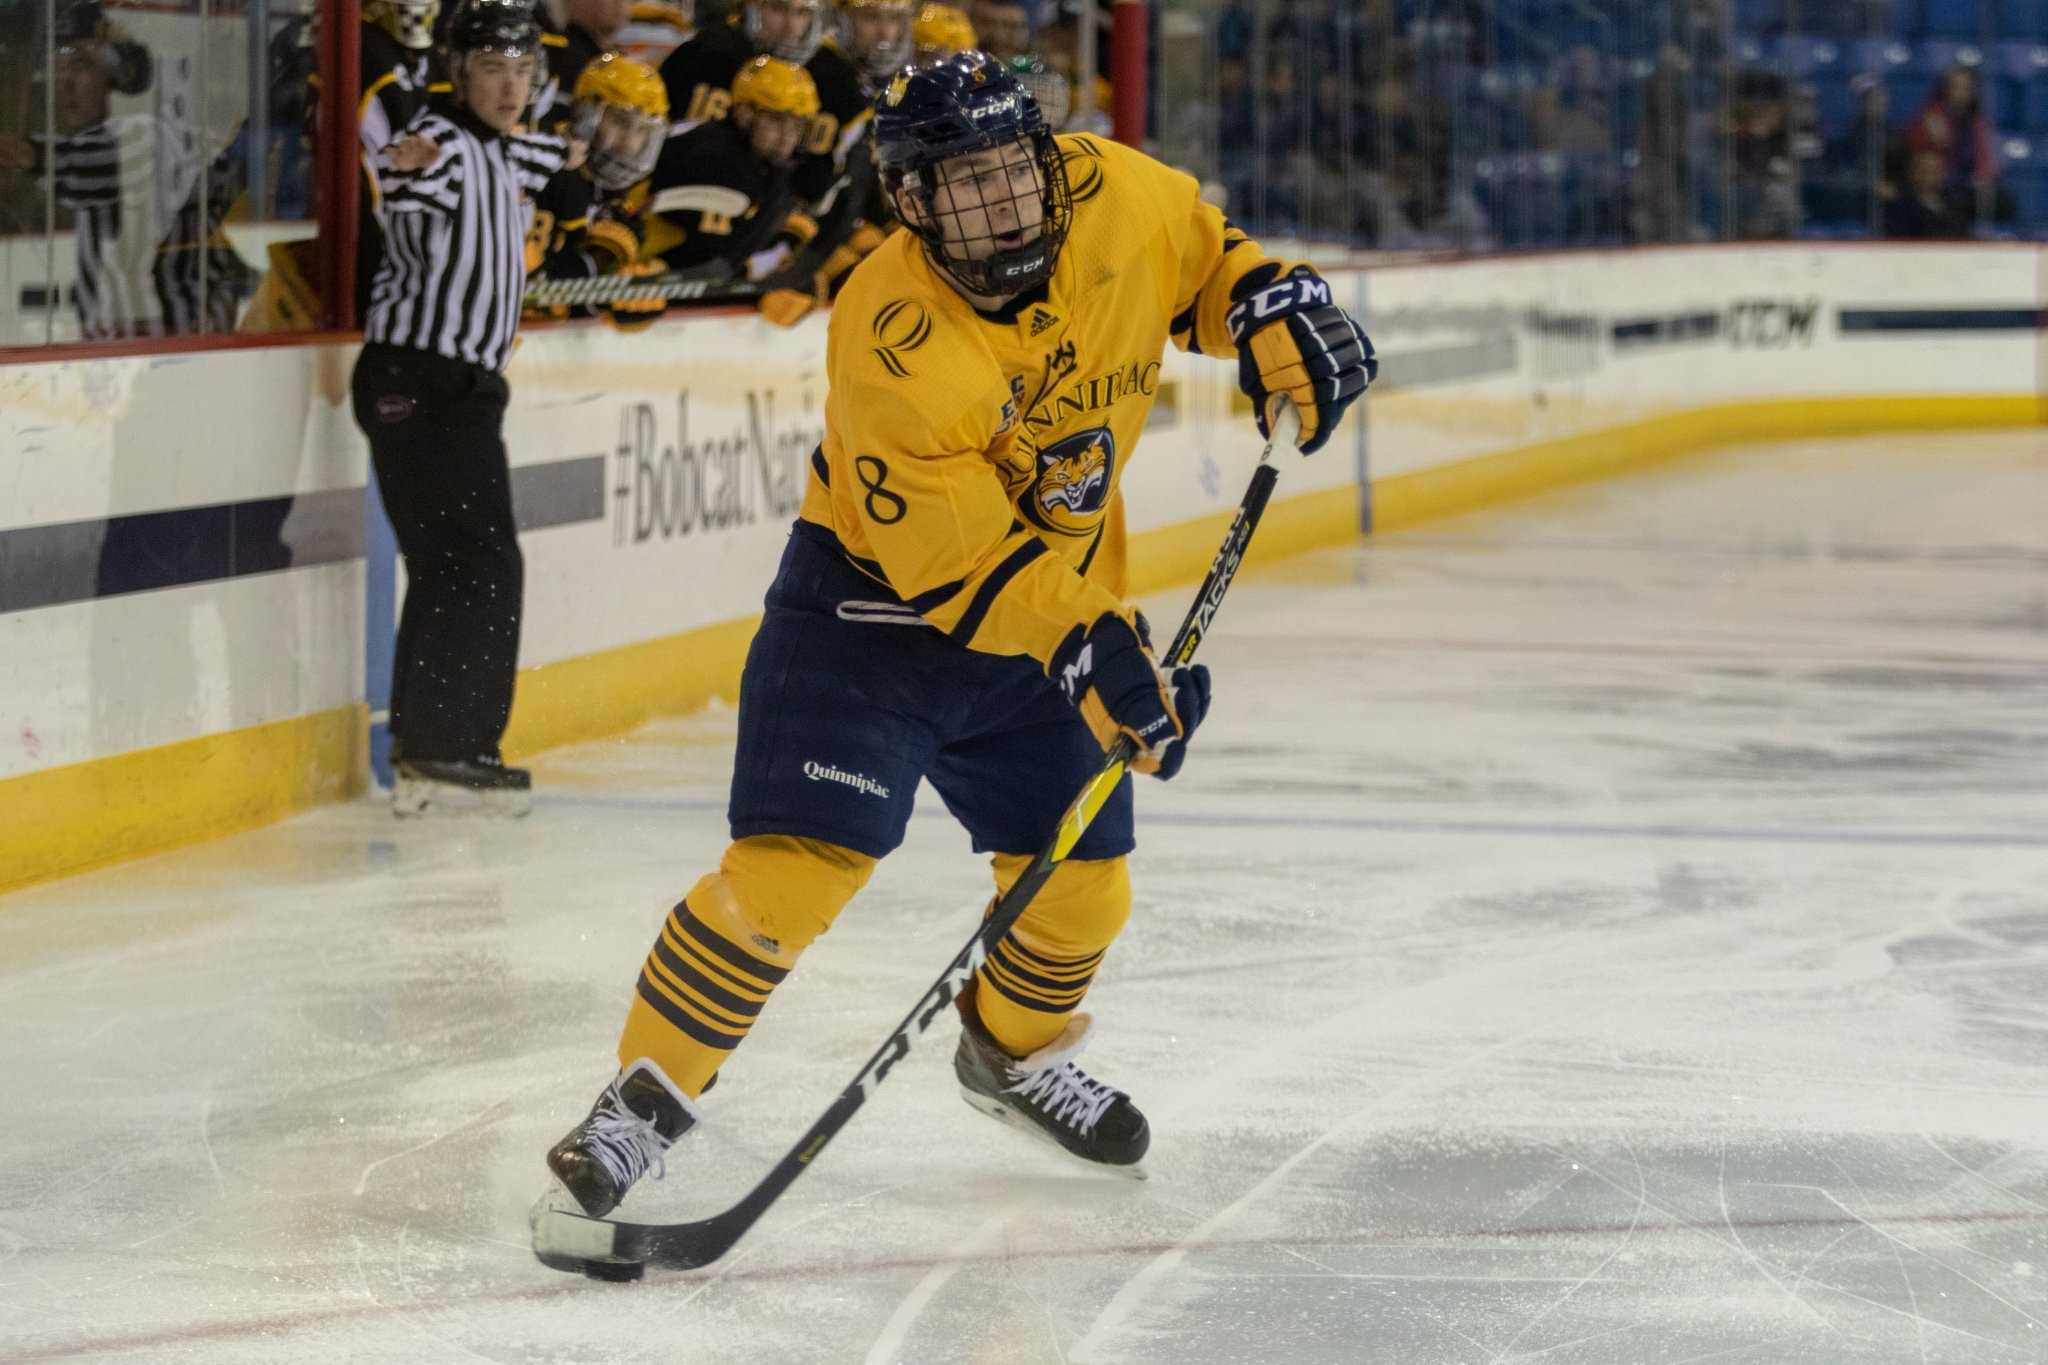 Quinnipiac men's ice hockey loses its first game of the year, 5-1 to Dartmouth